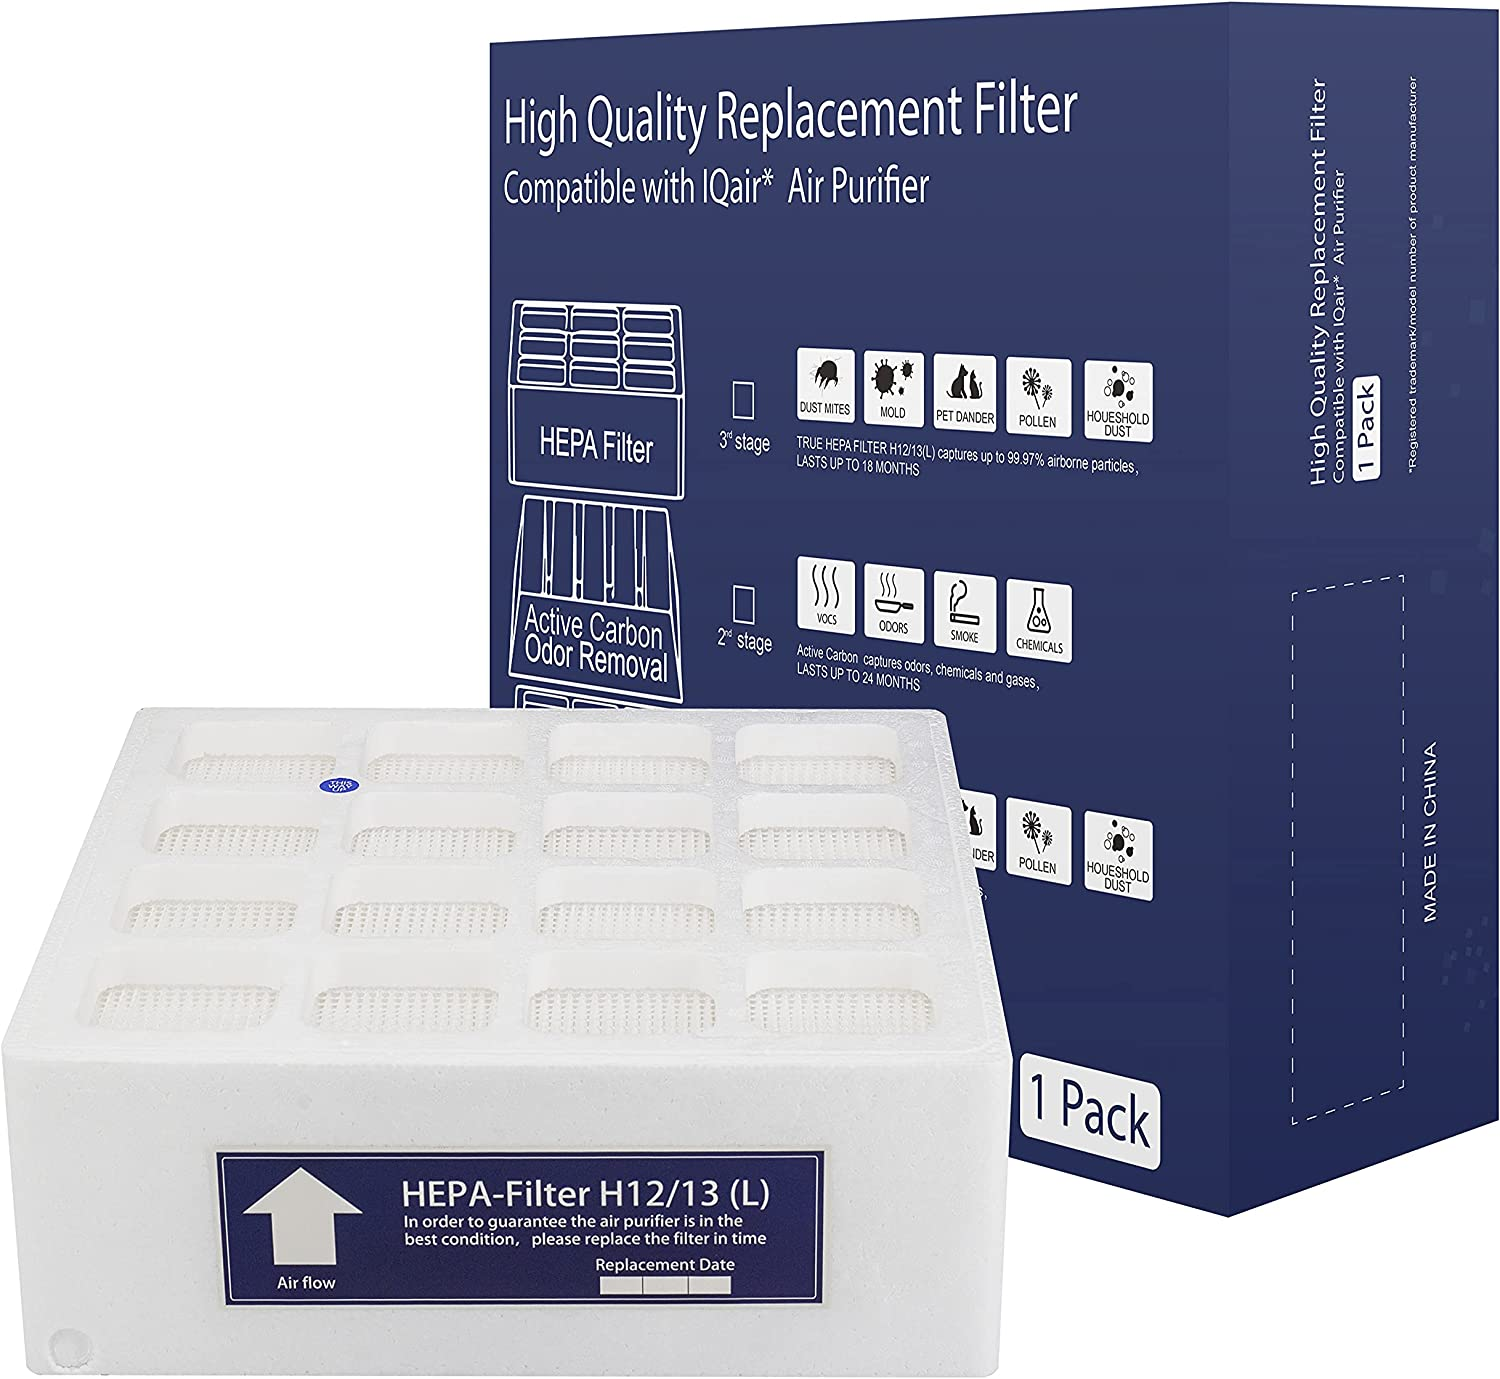 HEPA New arrival Replacement Limited Special Price Filter Compatible with IQ P HEALTH Compact Air